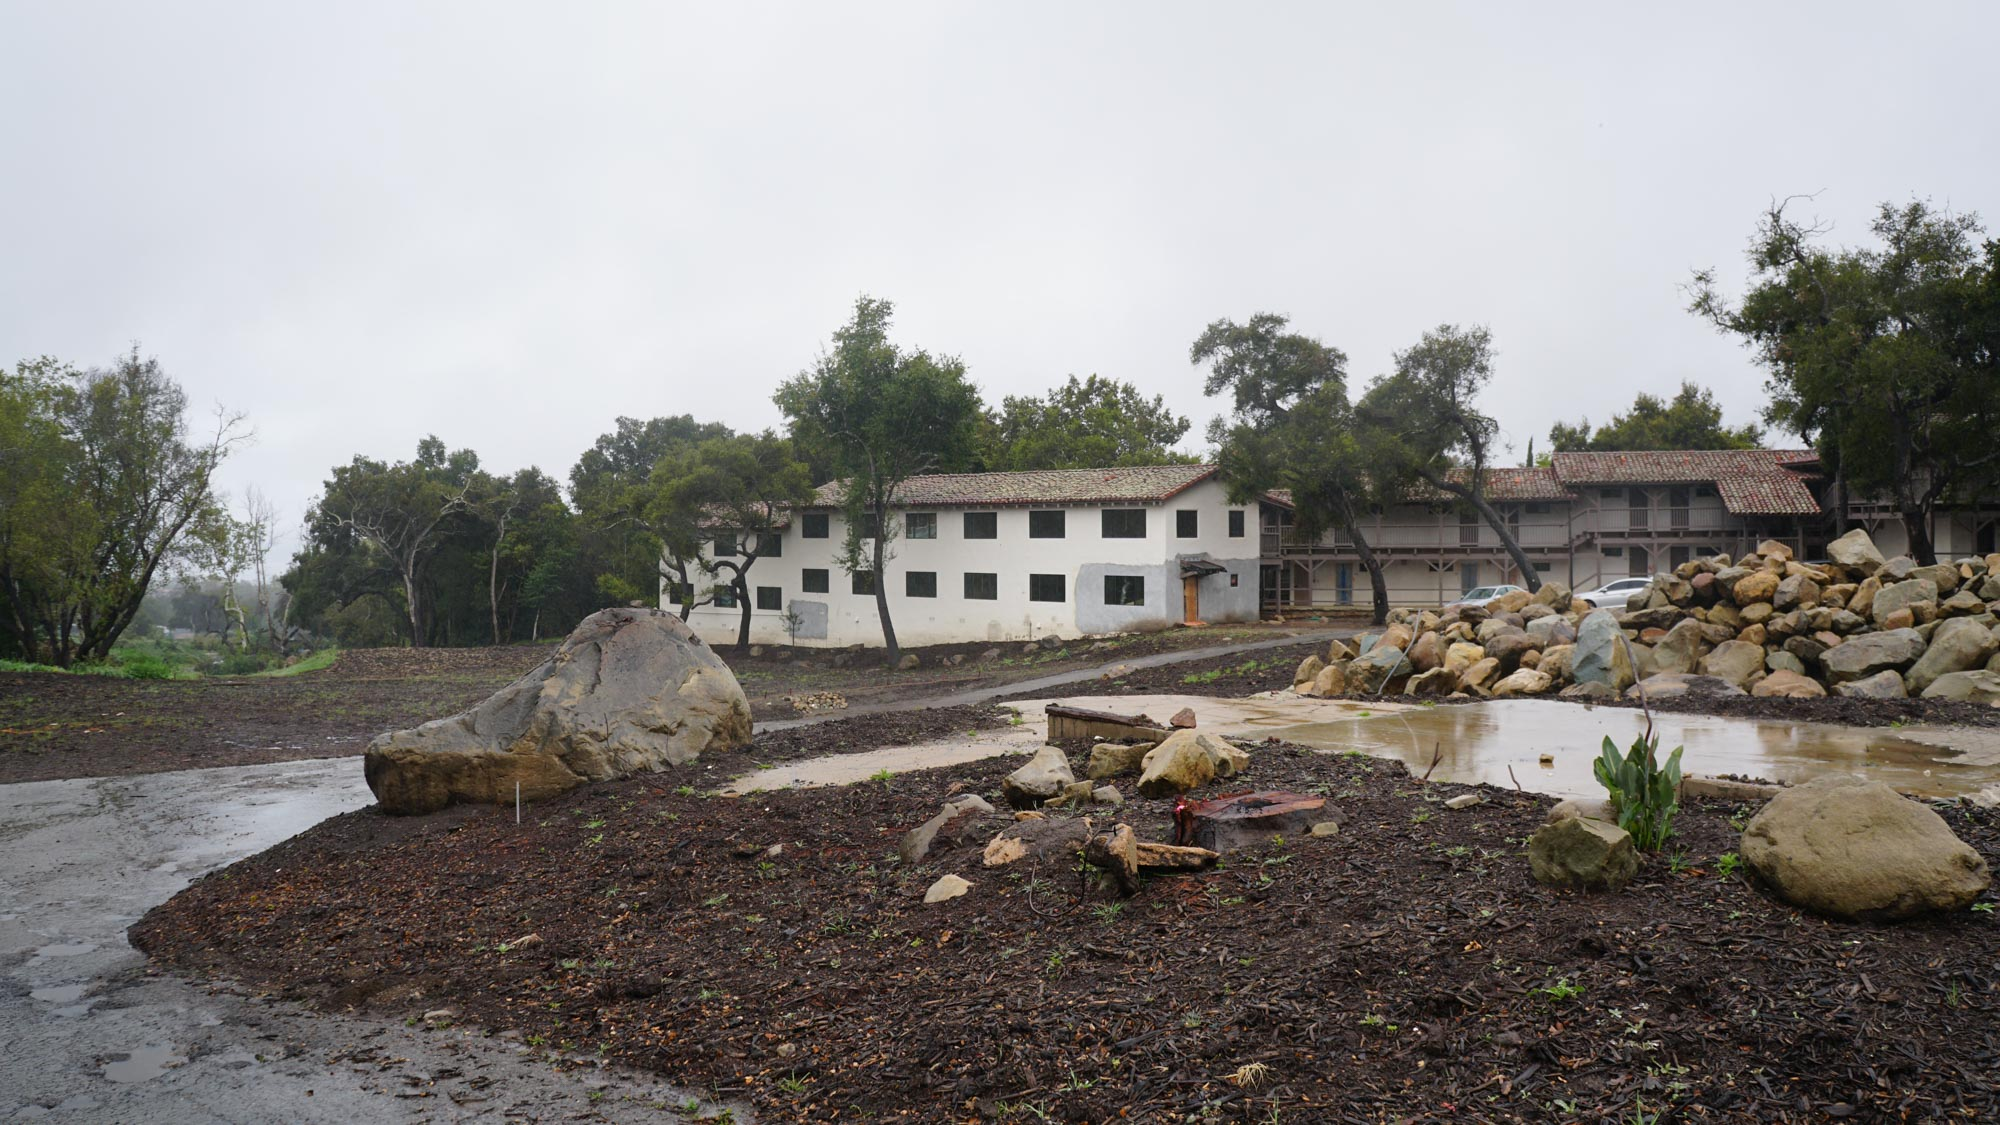 la Casa de Maria, burned and damaged after the events of the fire